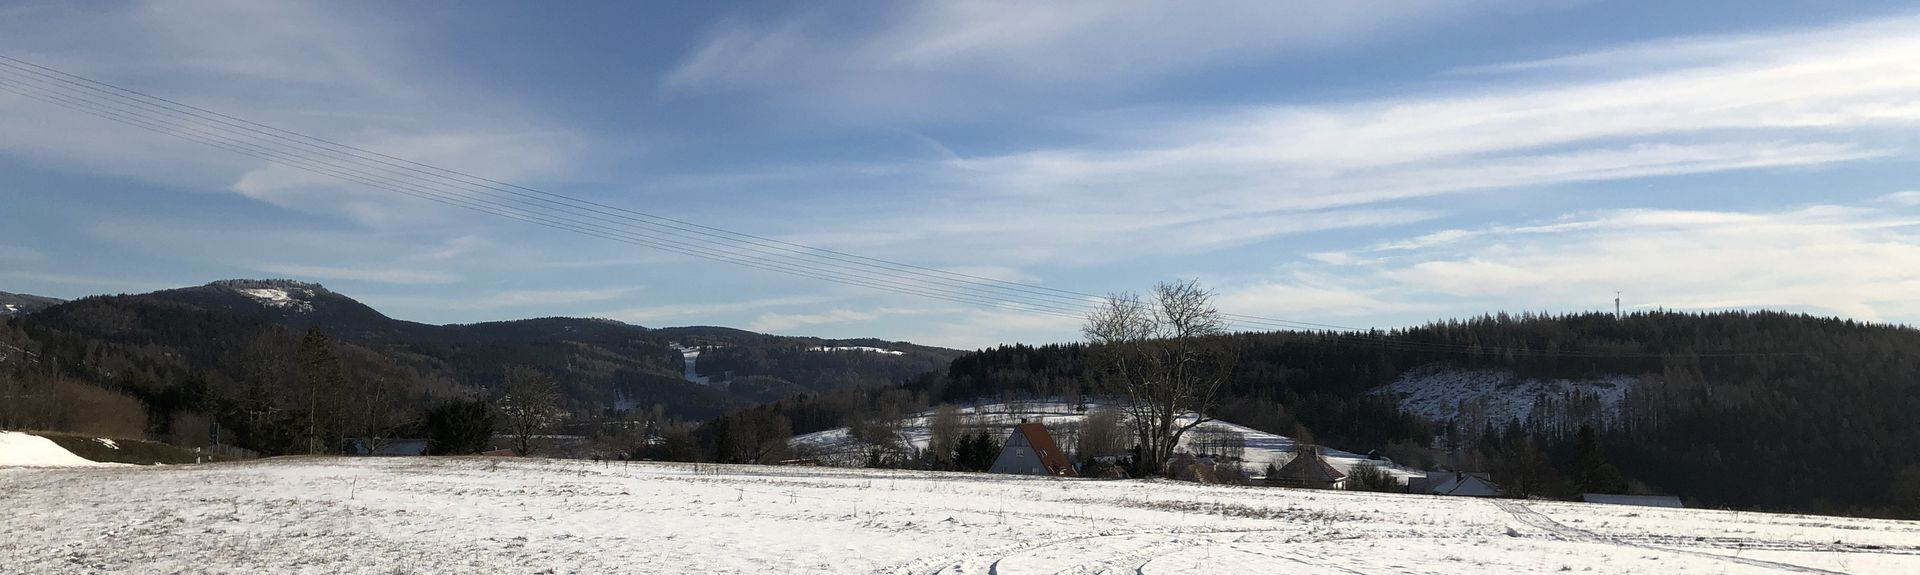 Breitungen, Thuringia, Germany